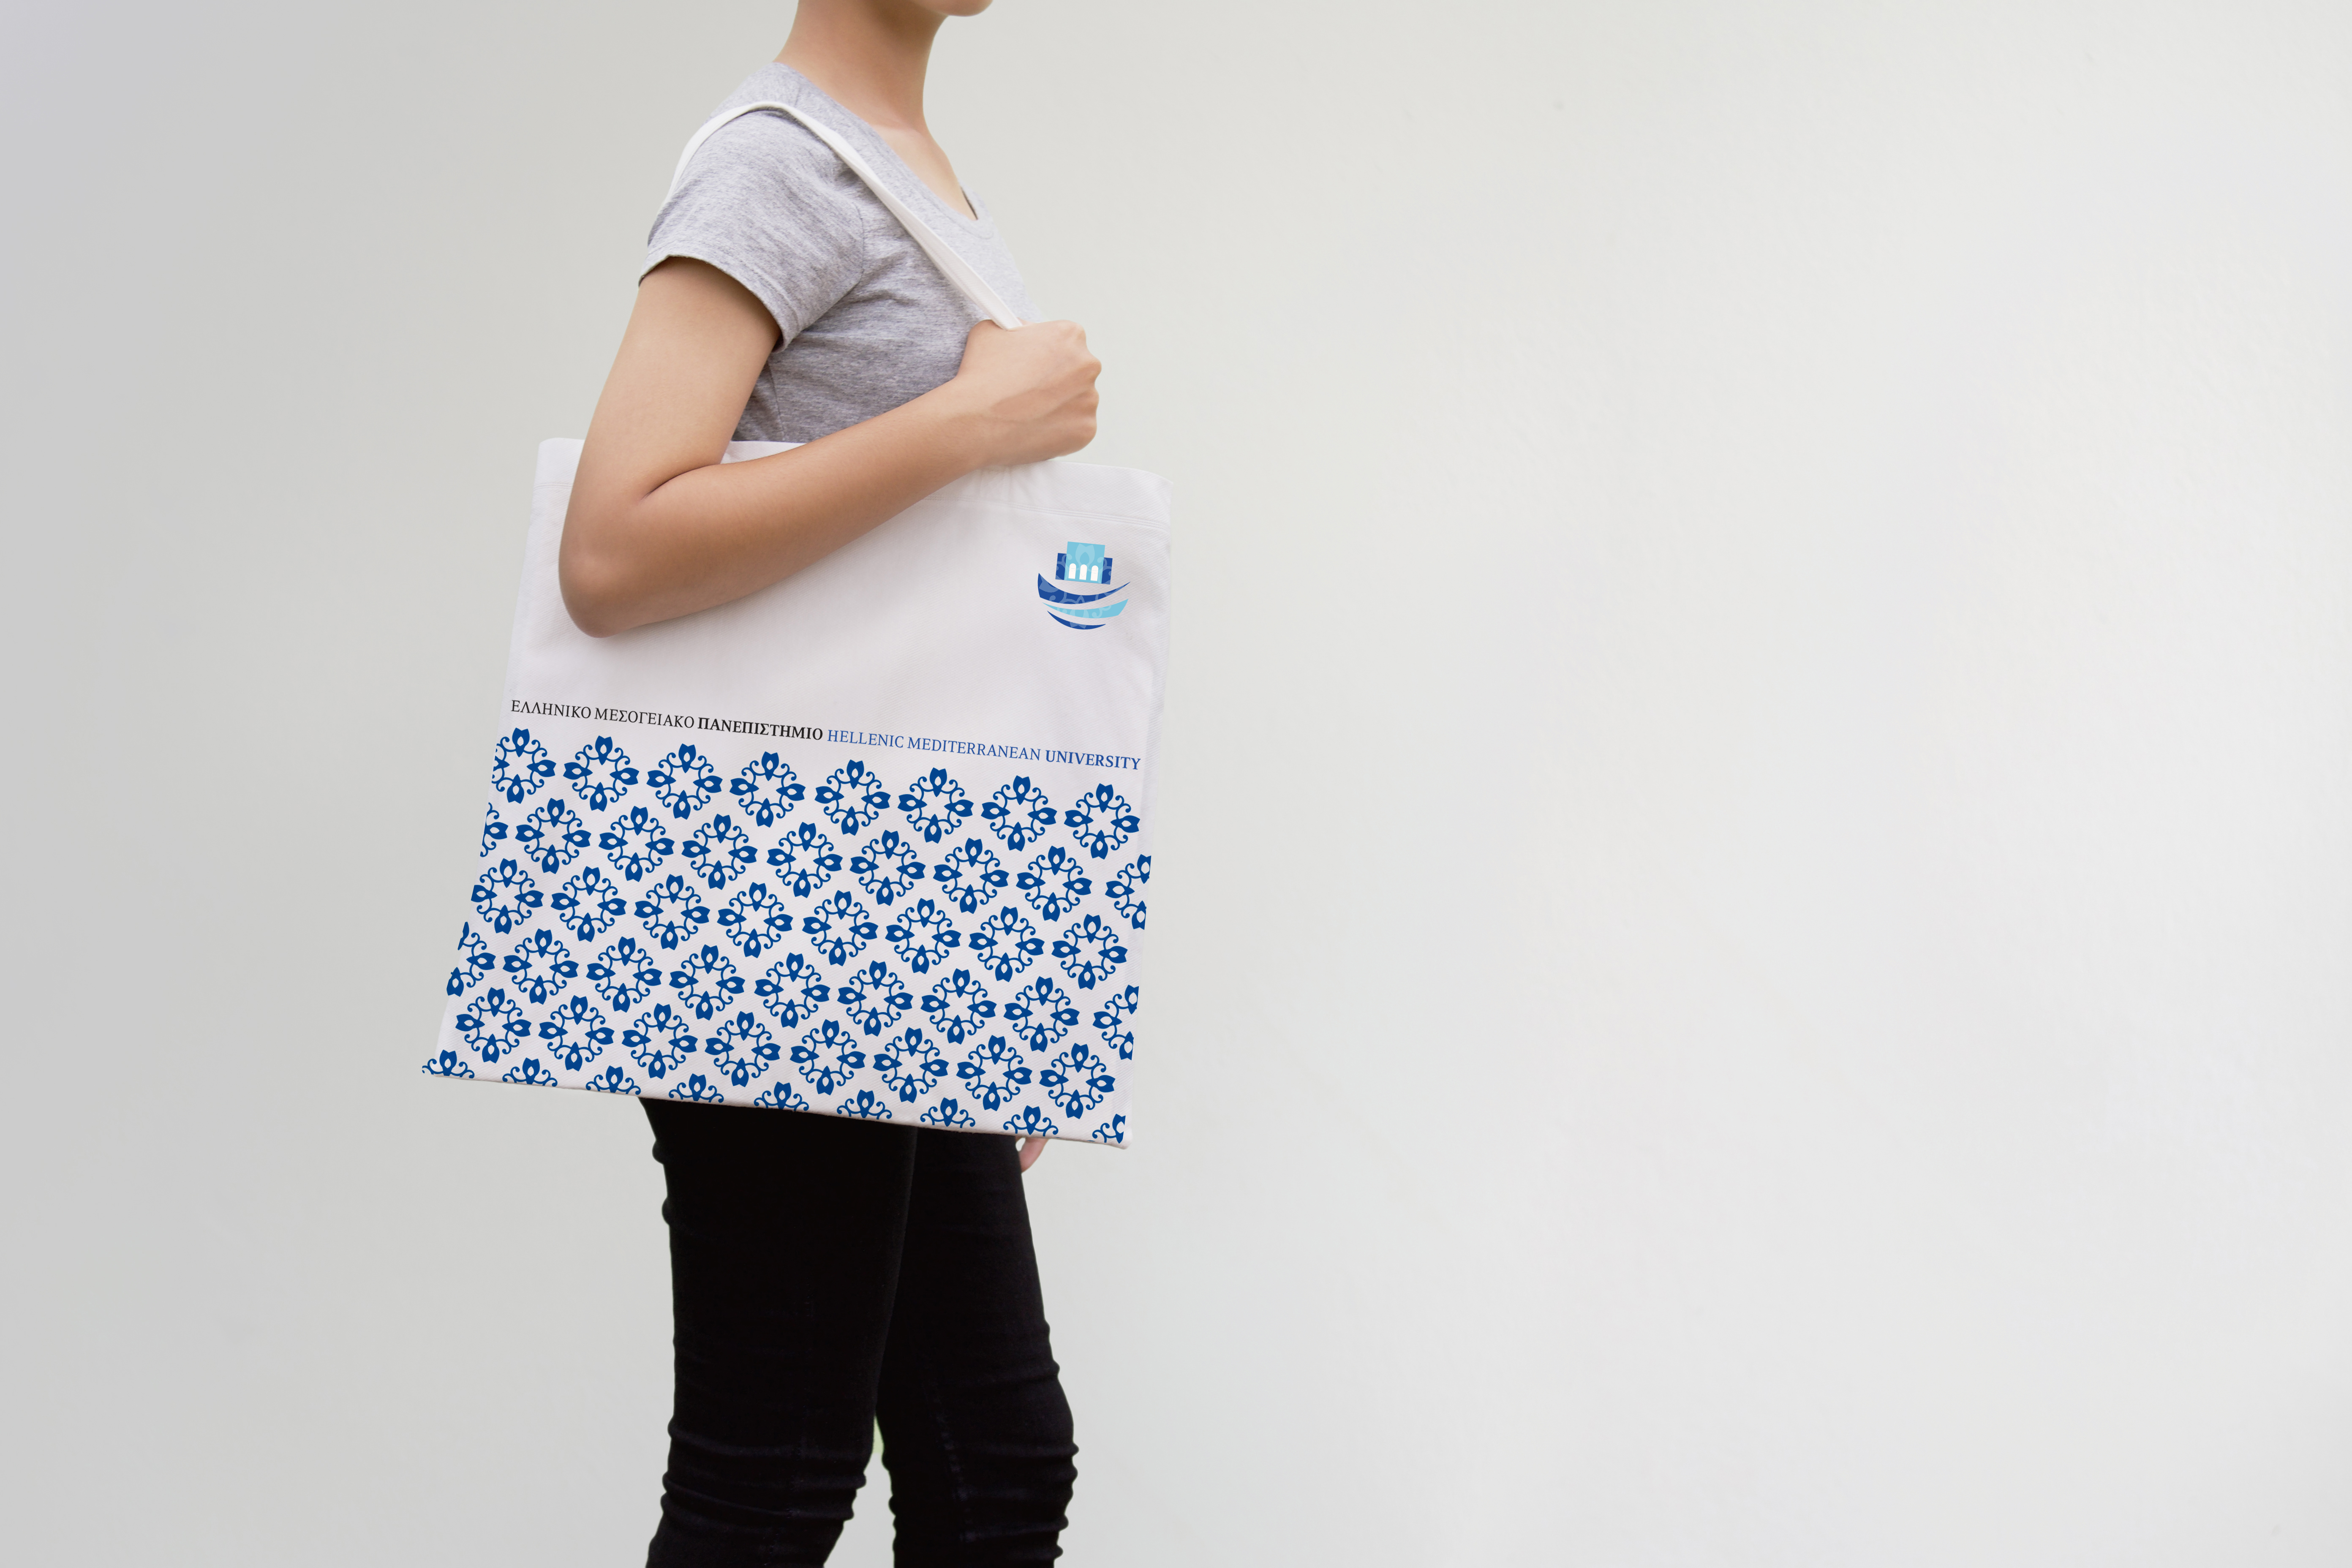 Logo applied on tote bag